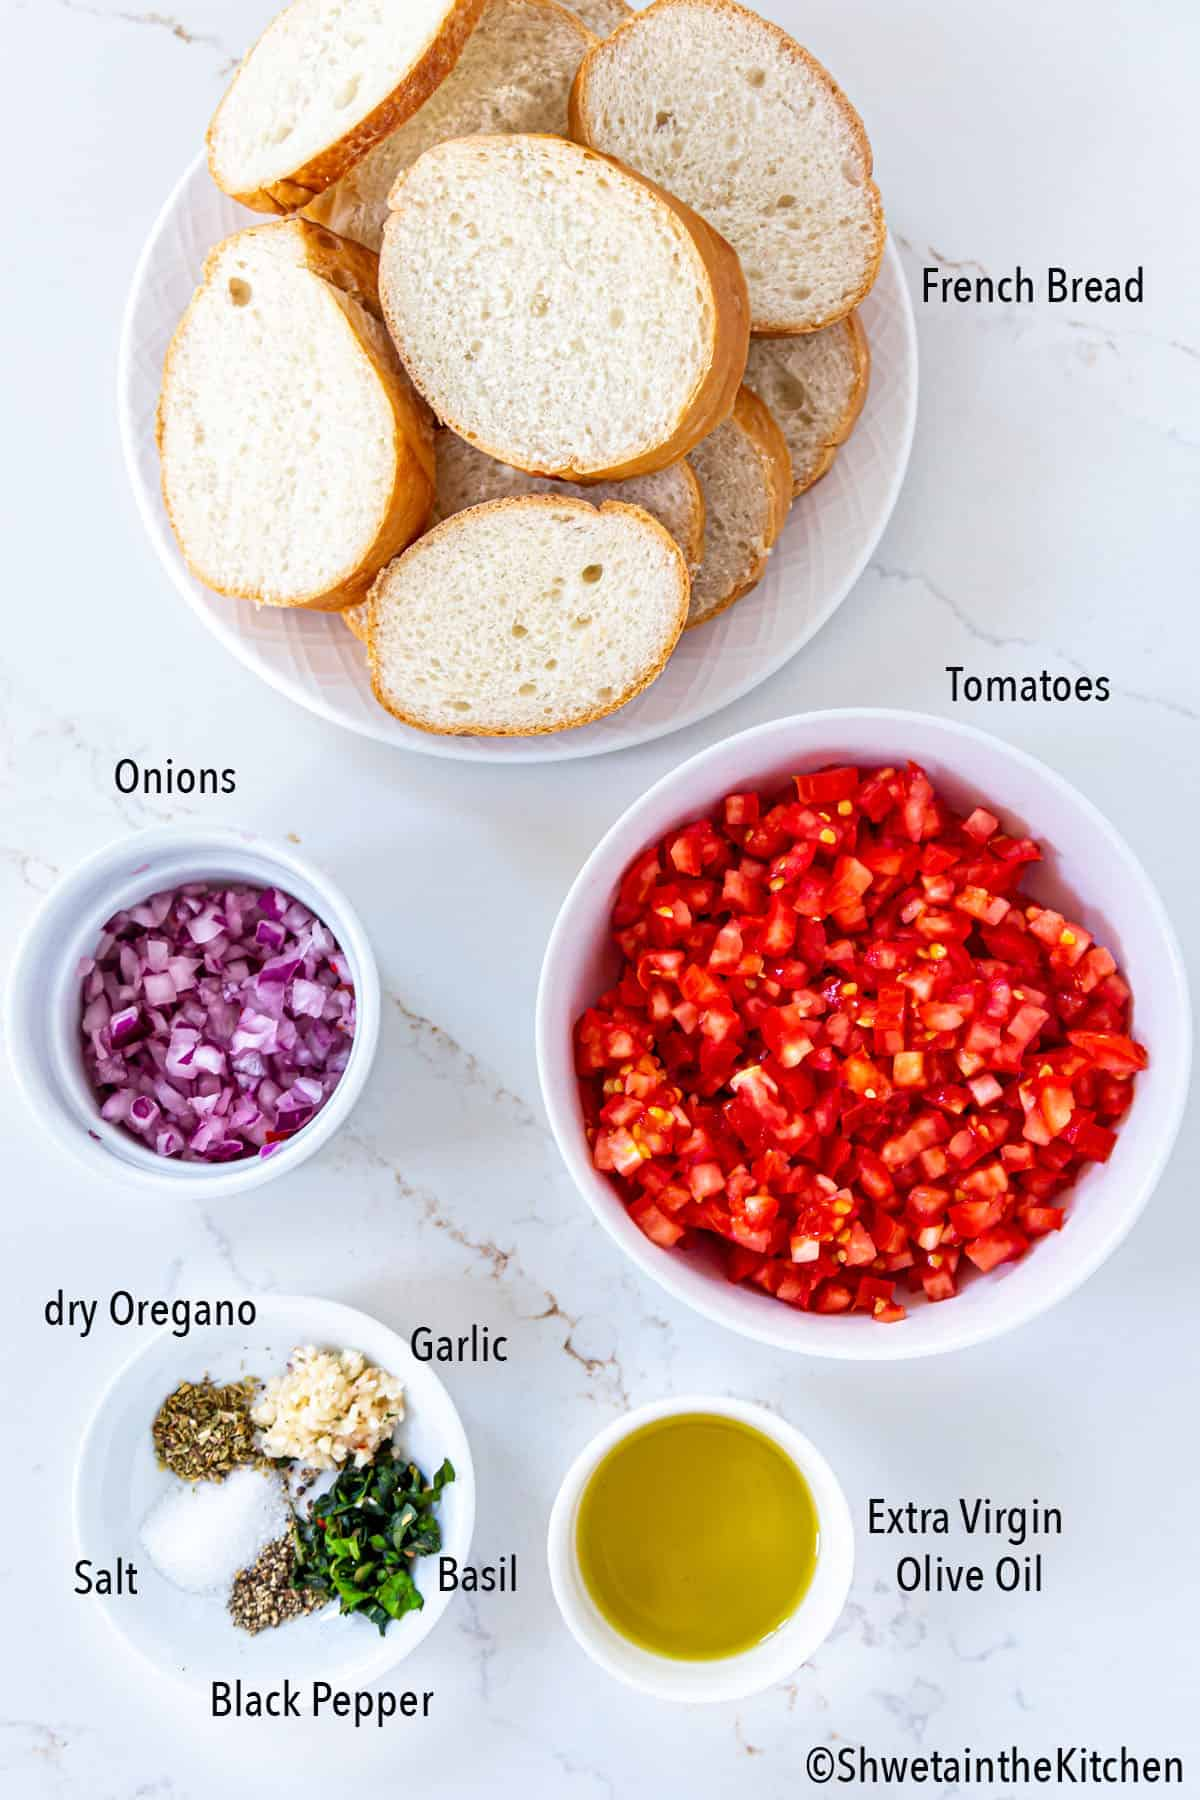 Ingredients for Tomato Basil Bruschetta on white surface